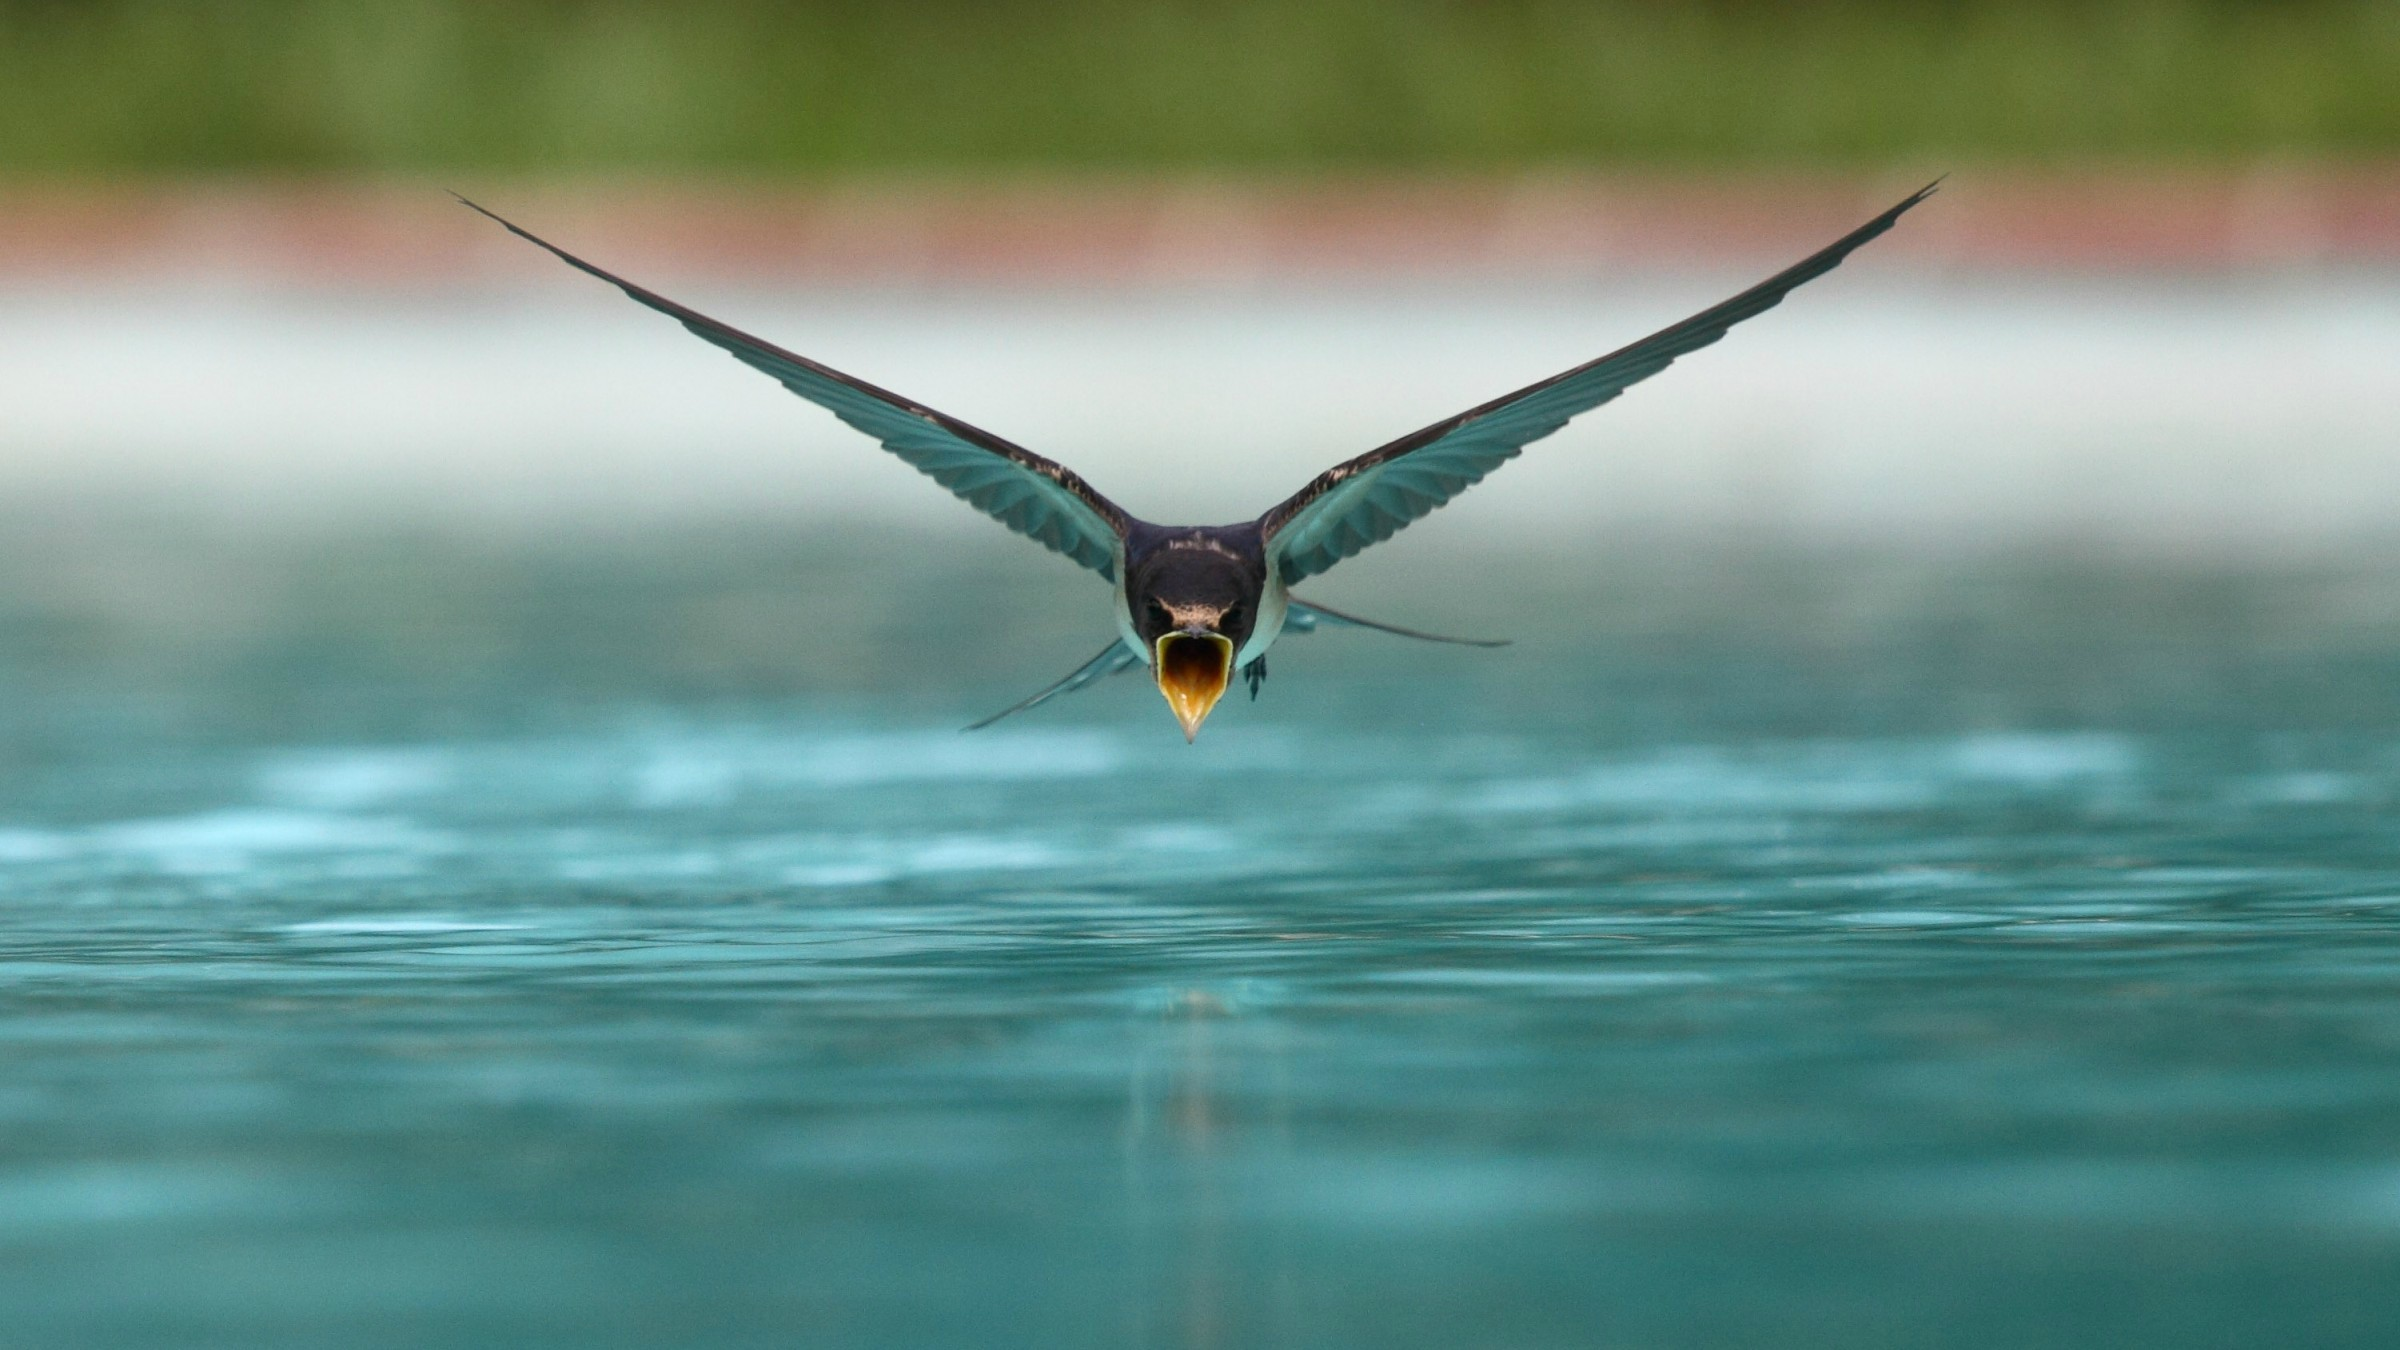 A Swallow Drinking While Flying